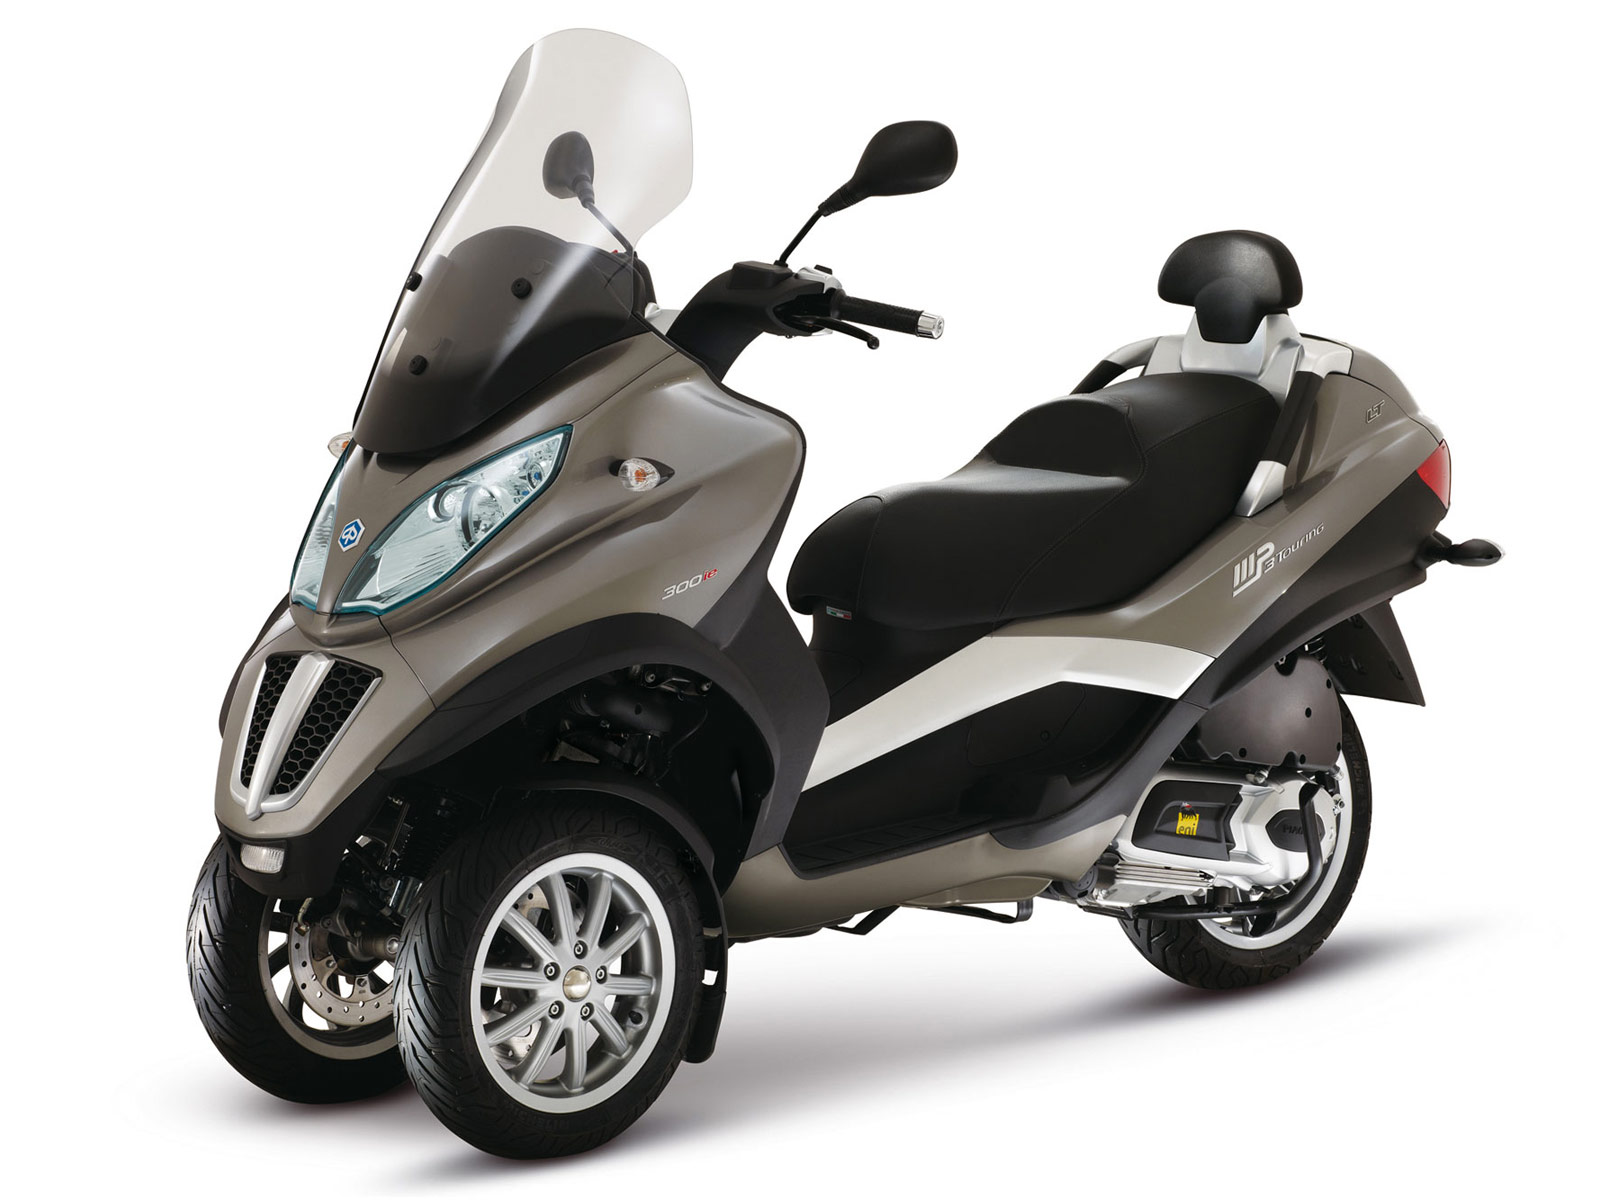 2012 piaggio mp3 touring lt300ie motorcycles insurance. Black Bedroom Furniture Sets. Home Design Ideas